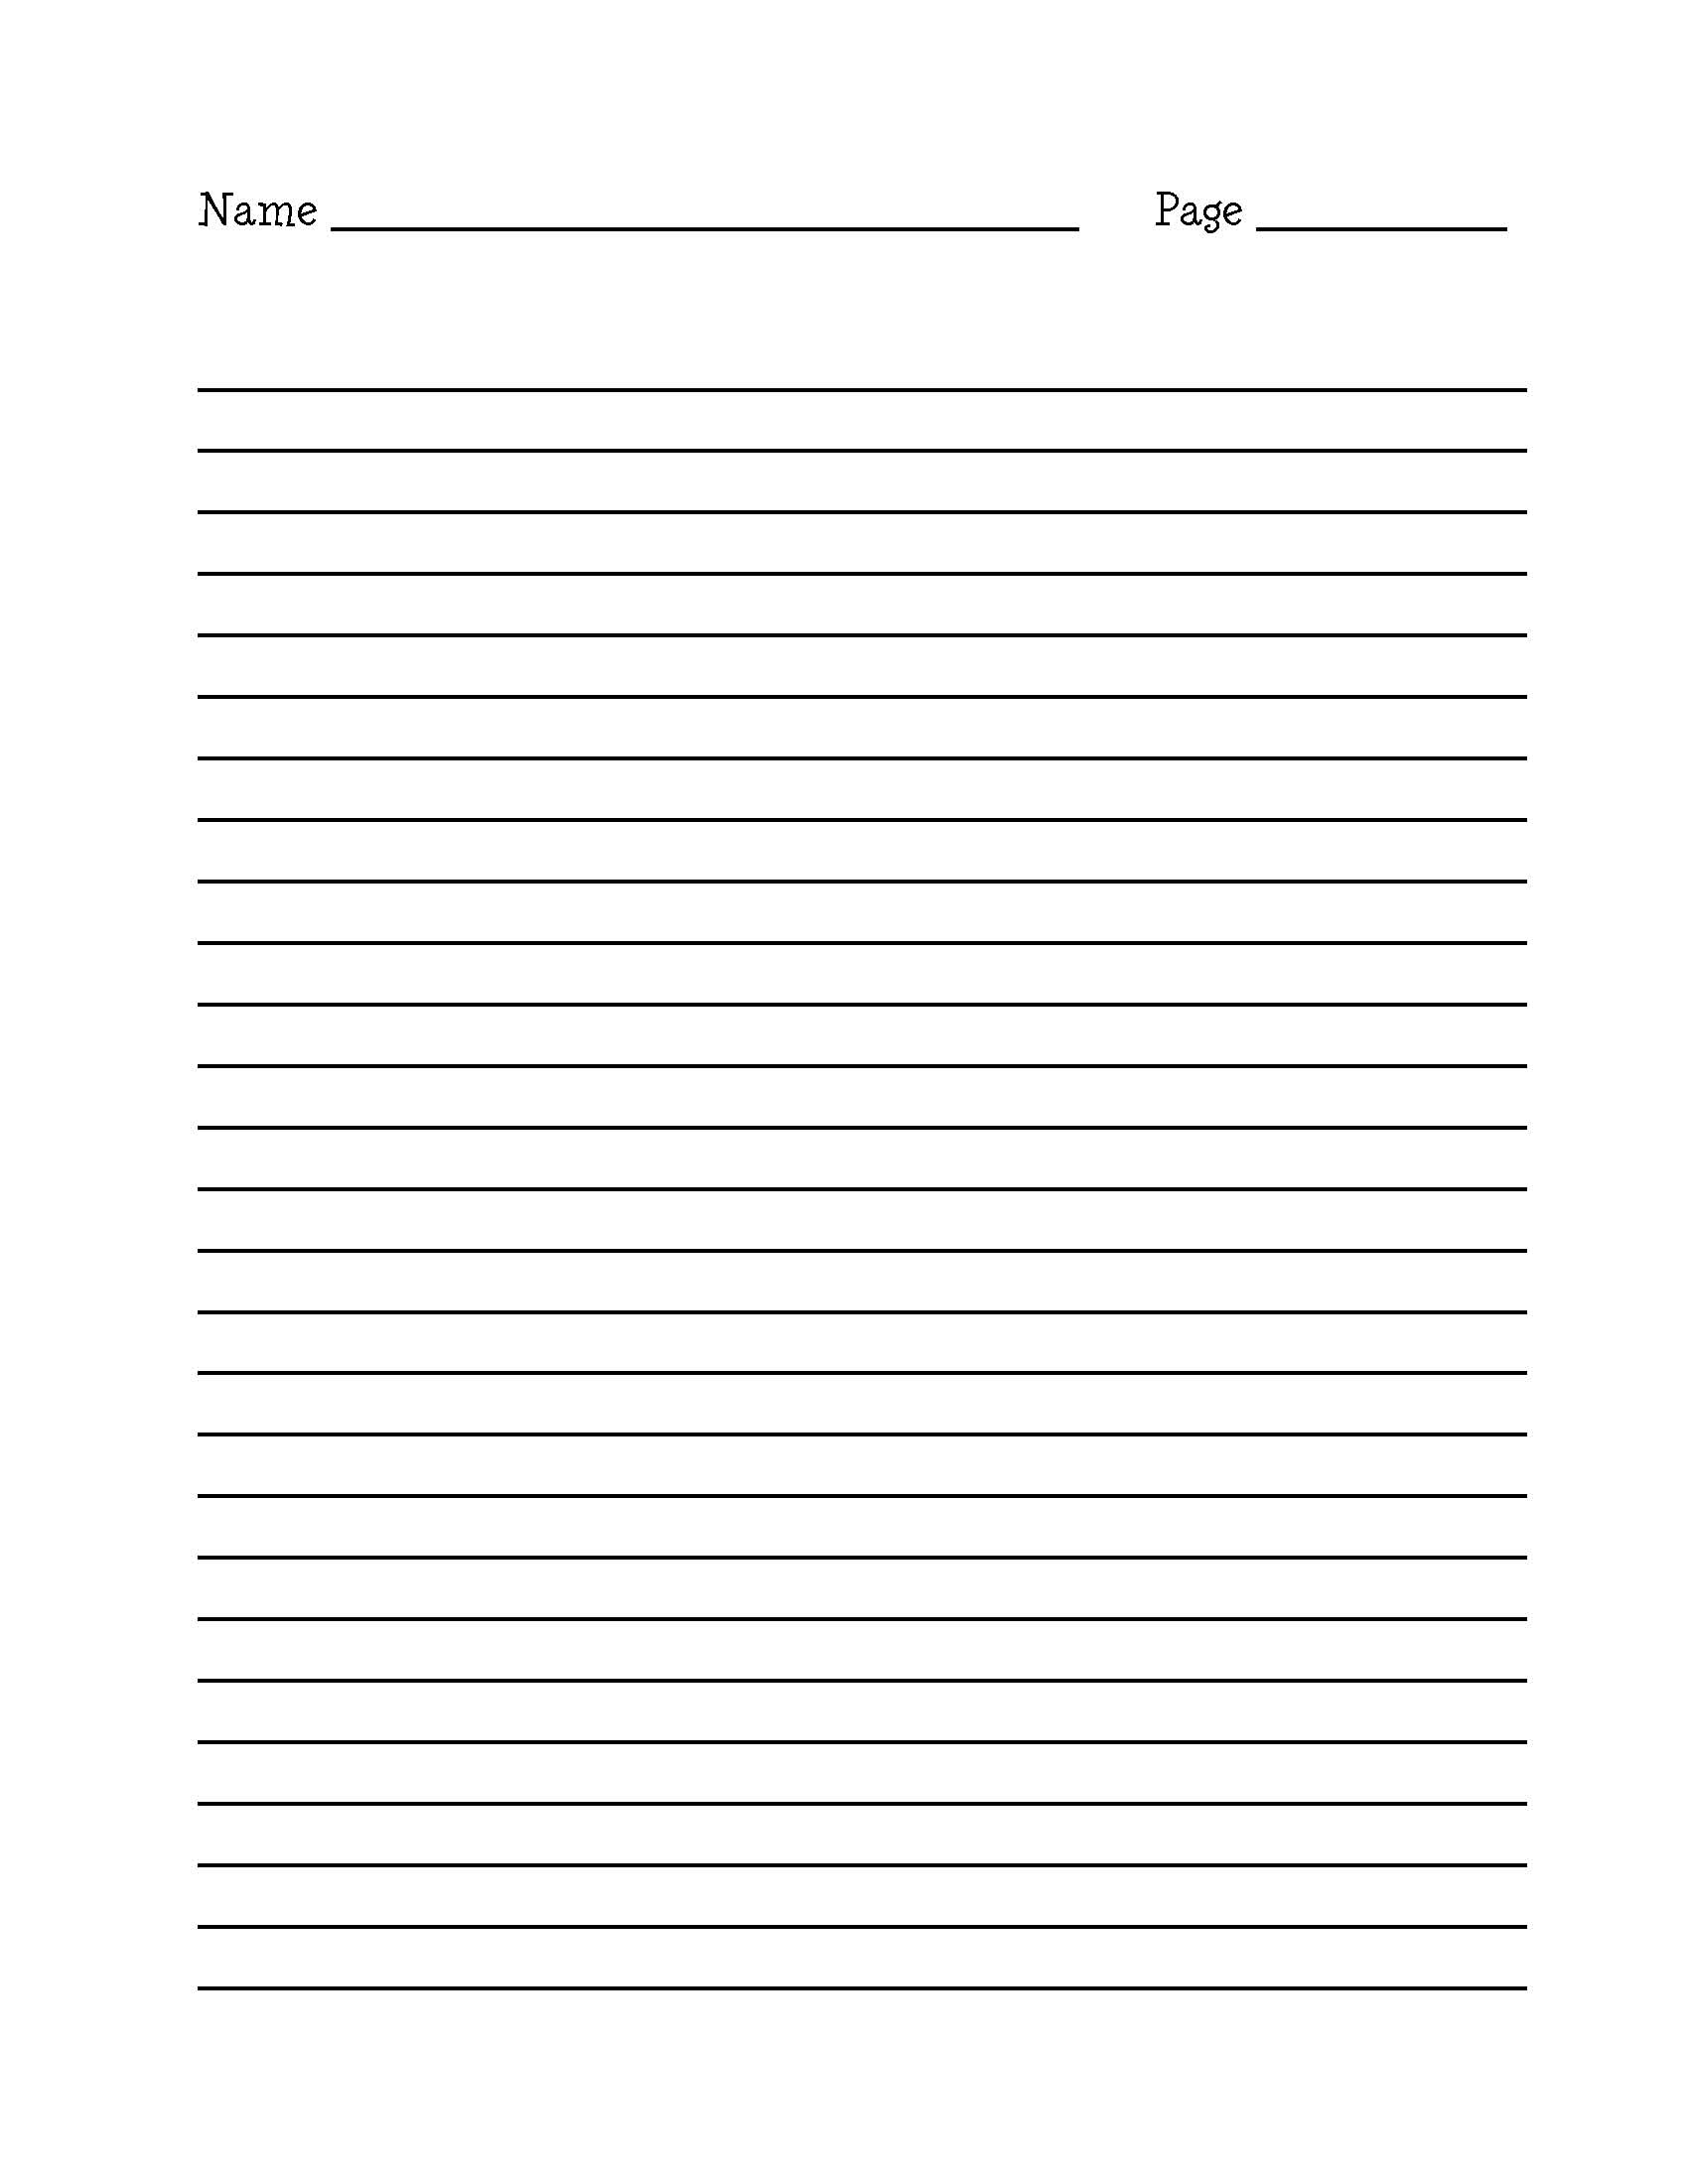 9 Images of STAAR Lined Writing Paper Printable